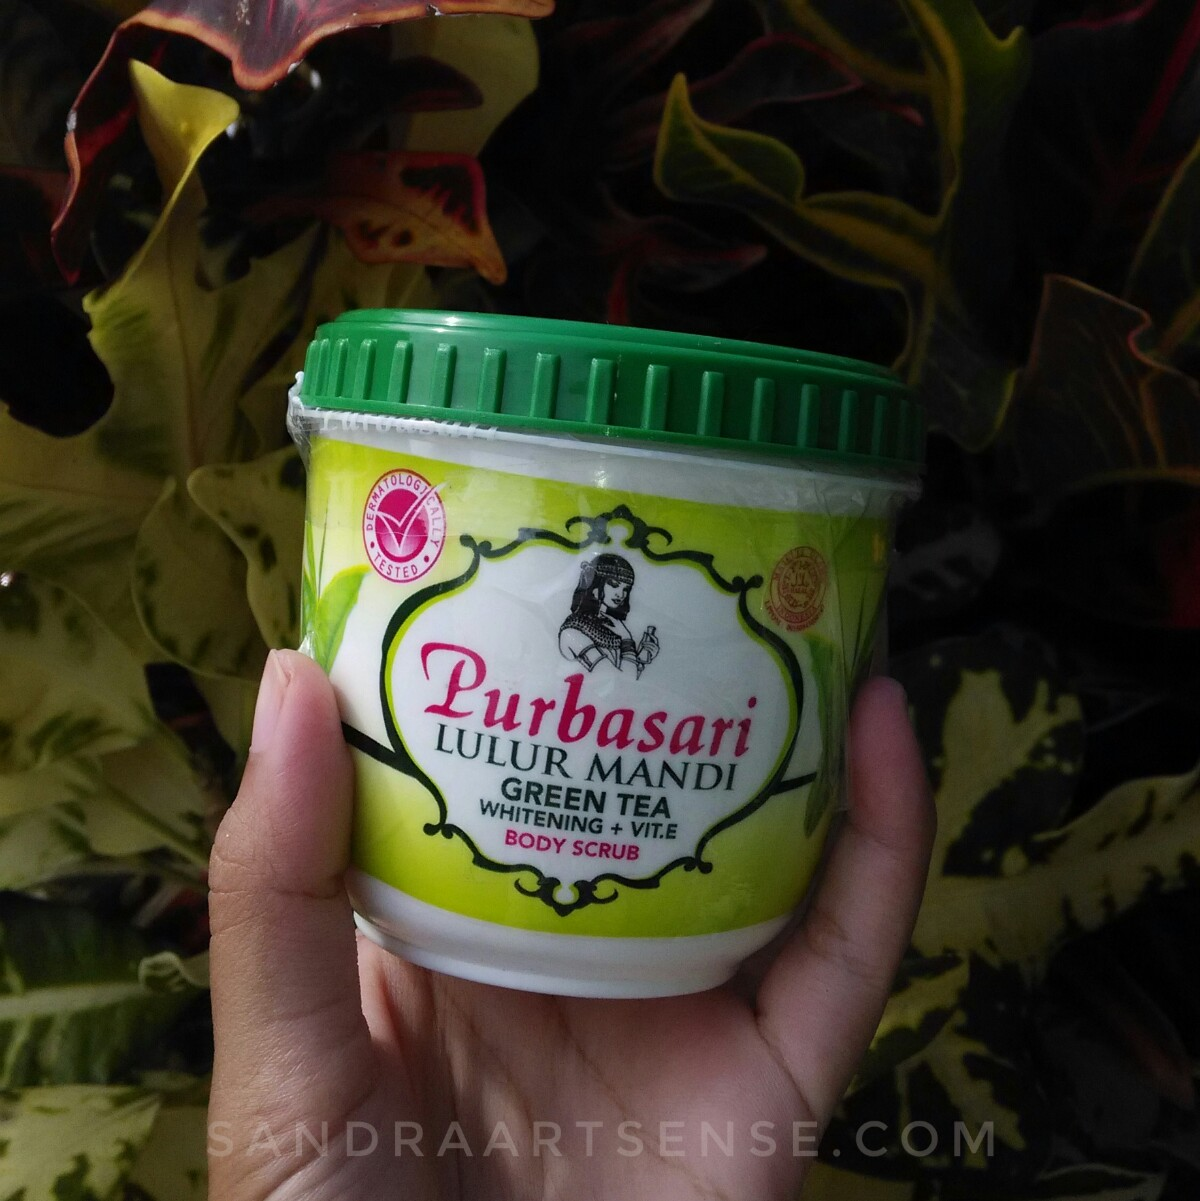 Sandraartsensecom Review Purbasari Green Tea Body Scrub